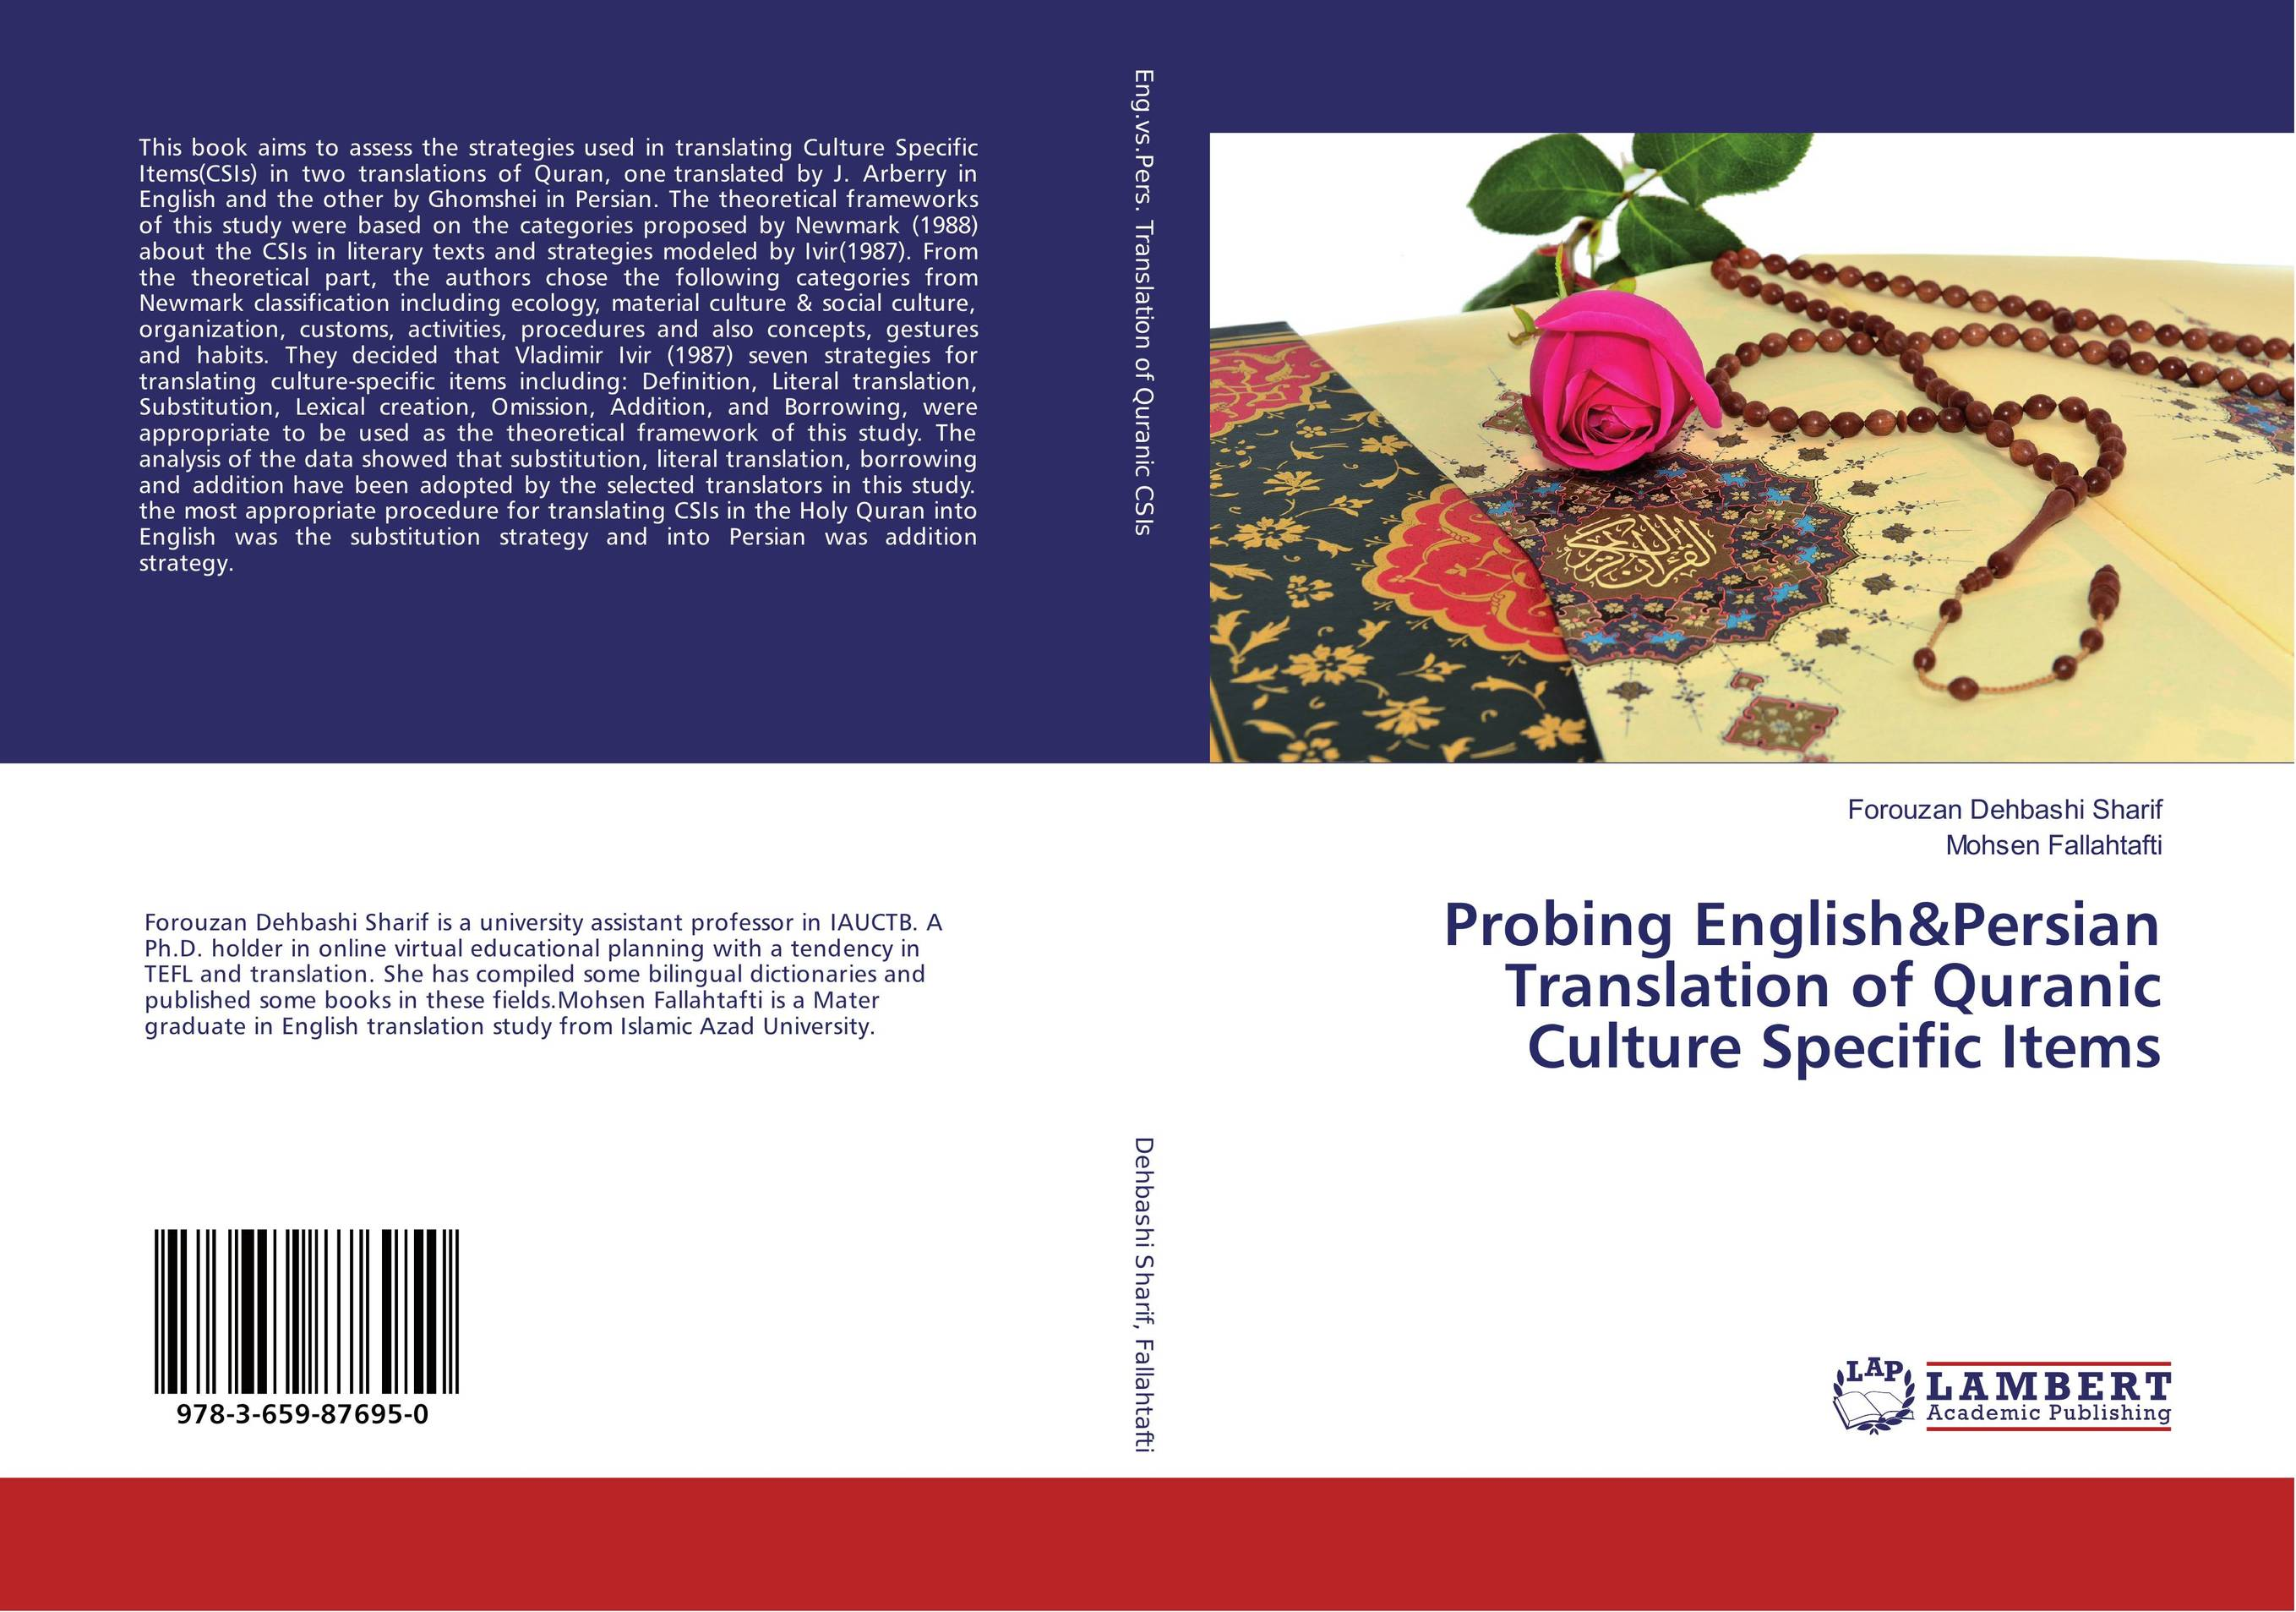 Probing English&Persian Translation of Quranic Culture Specific Items theories and practices of human resource management from quran